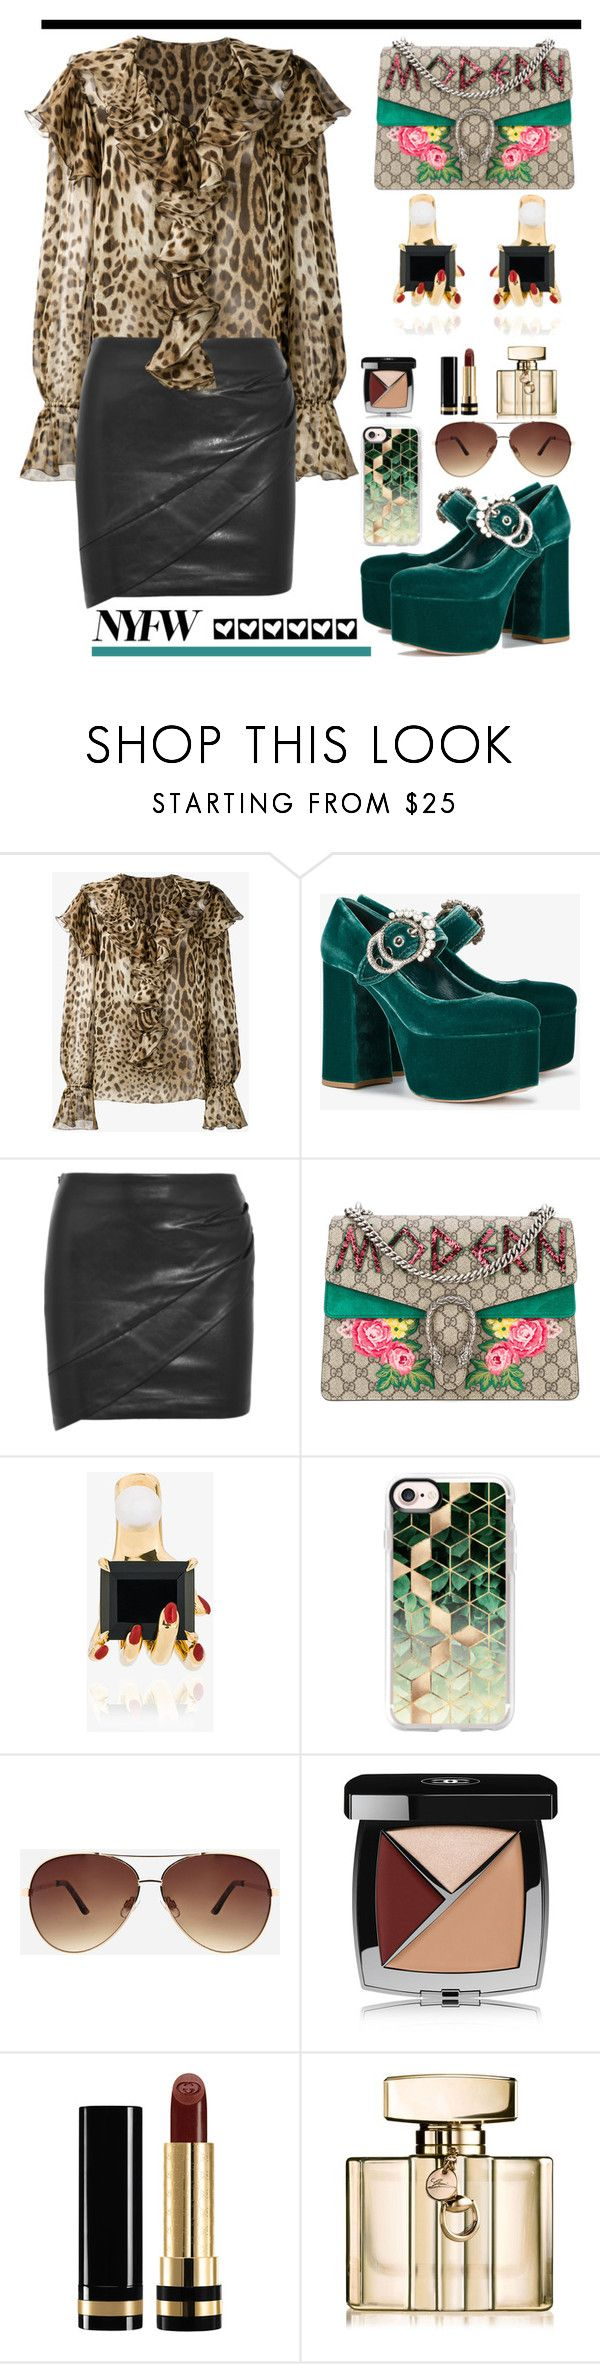 """What to Wear to NYFW"" by hamaly ❤ liked on Polyvore featuring Dolce&Gabbana, Miu Miu, IRO, Gucci, Anissa Kermiche, Casetify, Ashley Stewart, Chanel, NYFW and outfit"